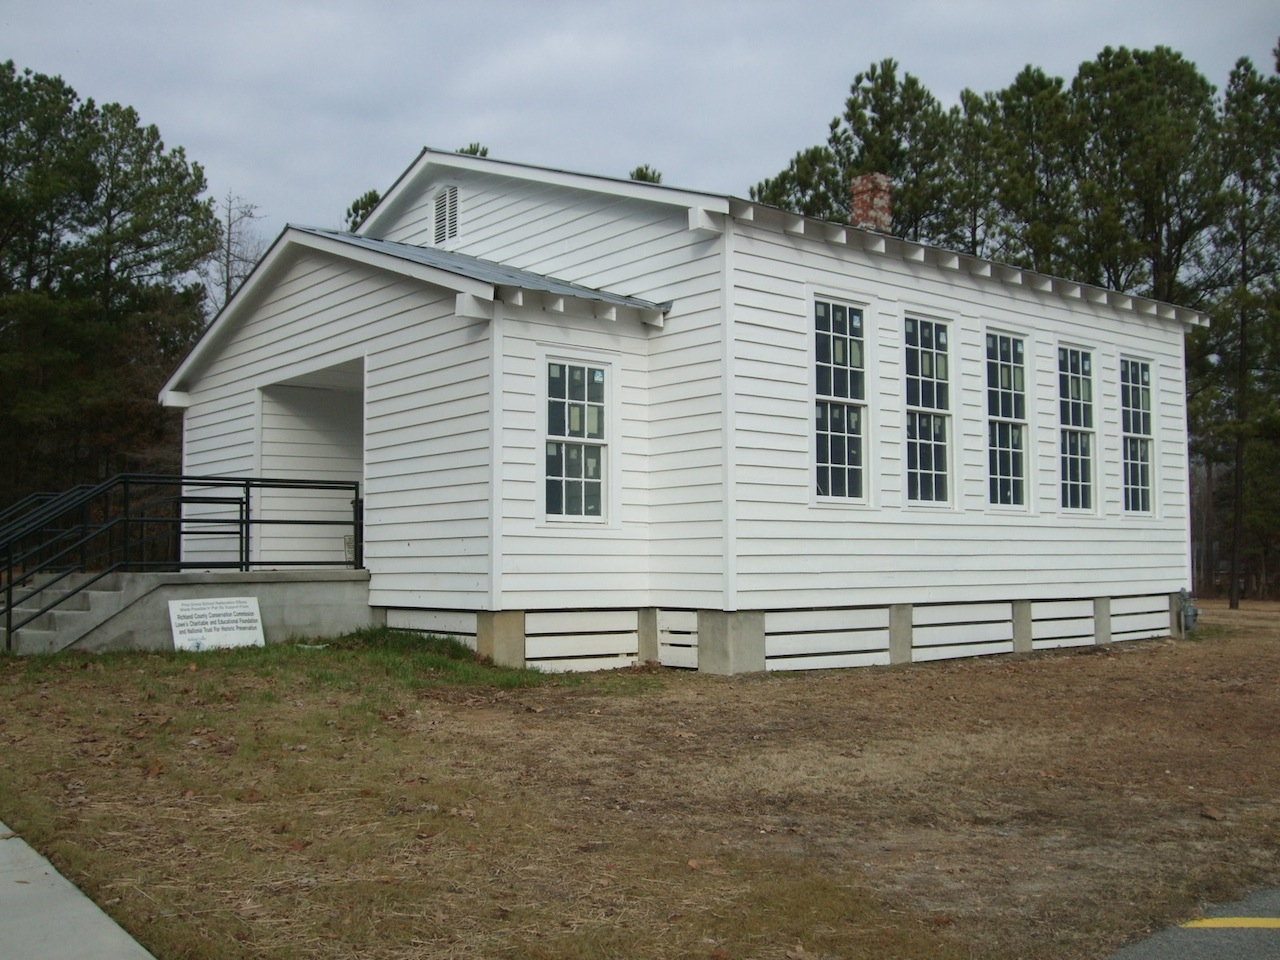 The former Pine Grove Rosenwald School